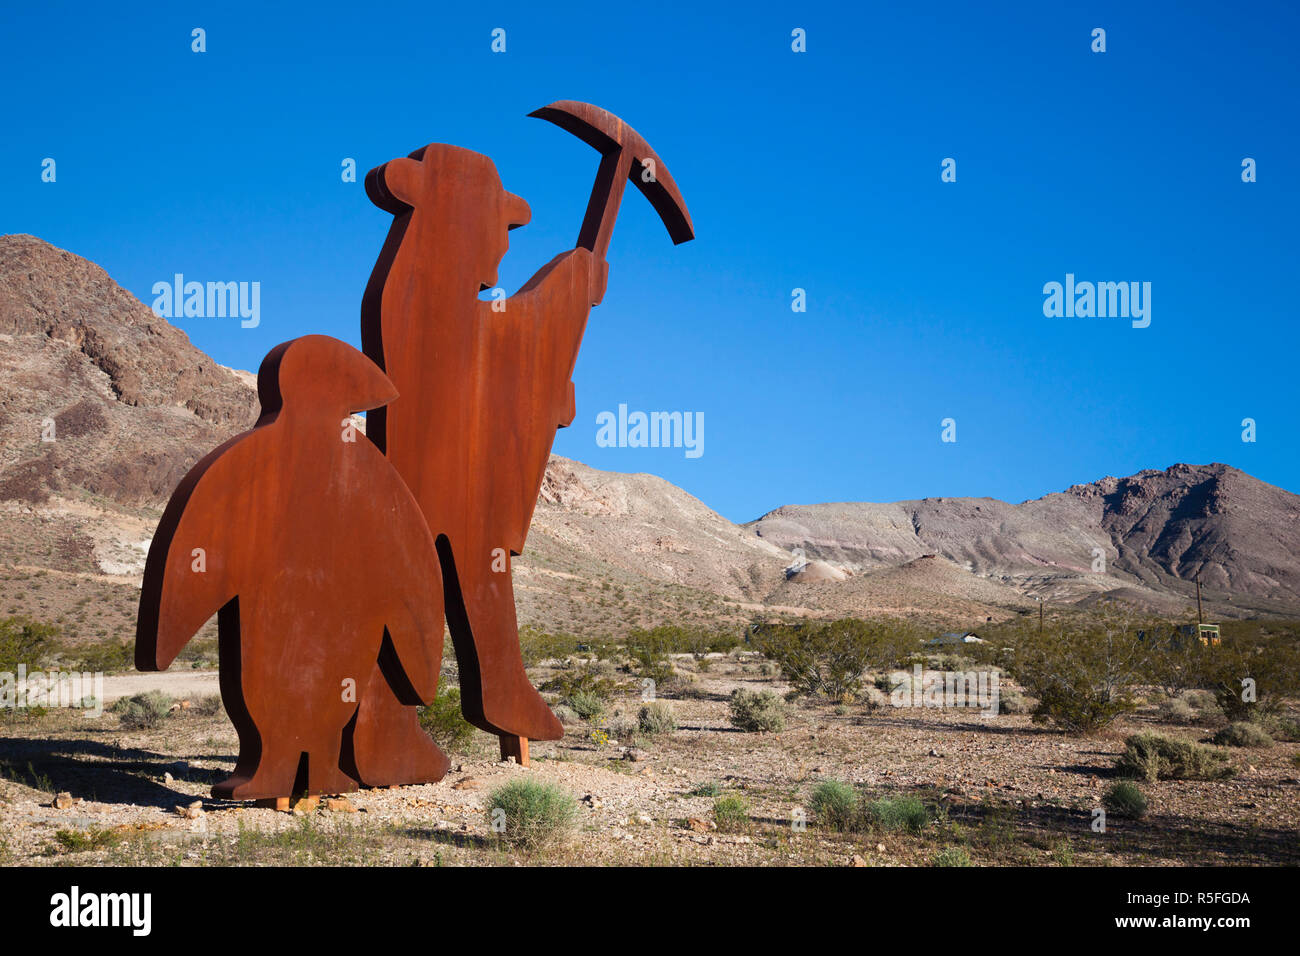 USA, Nevada, Great Basin, Beatty, Rhyolite Ghost Town, Goldwell Open Air Museum, Tribute to Shorty Harris by Fred Bervoets - Stock Image